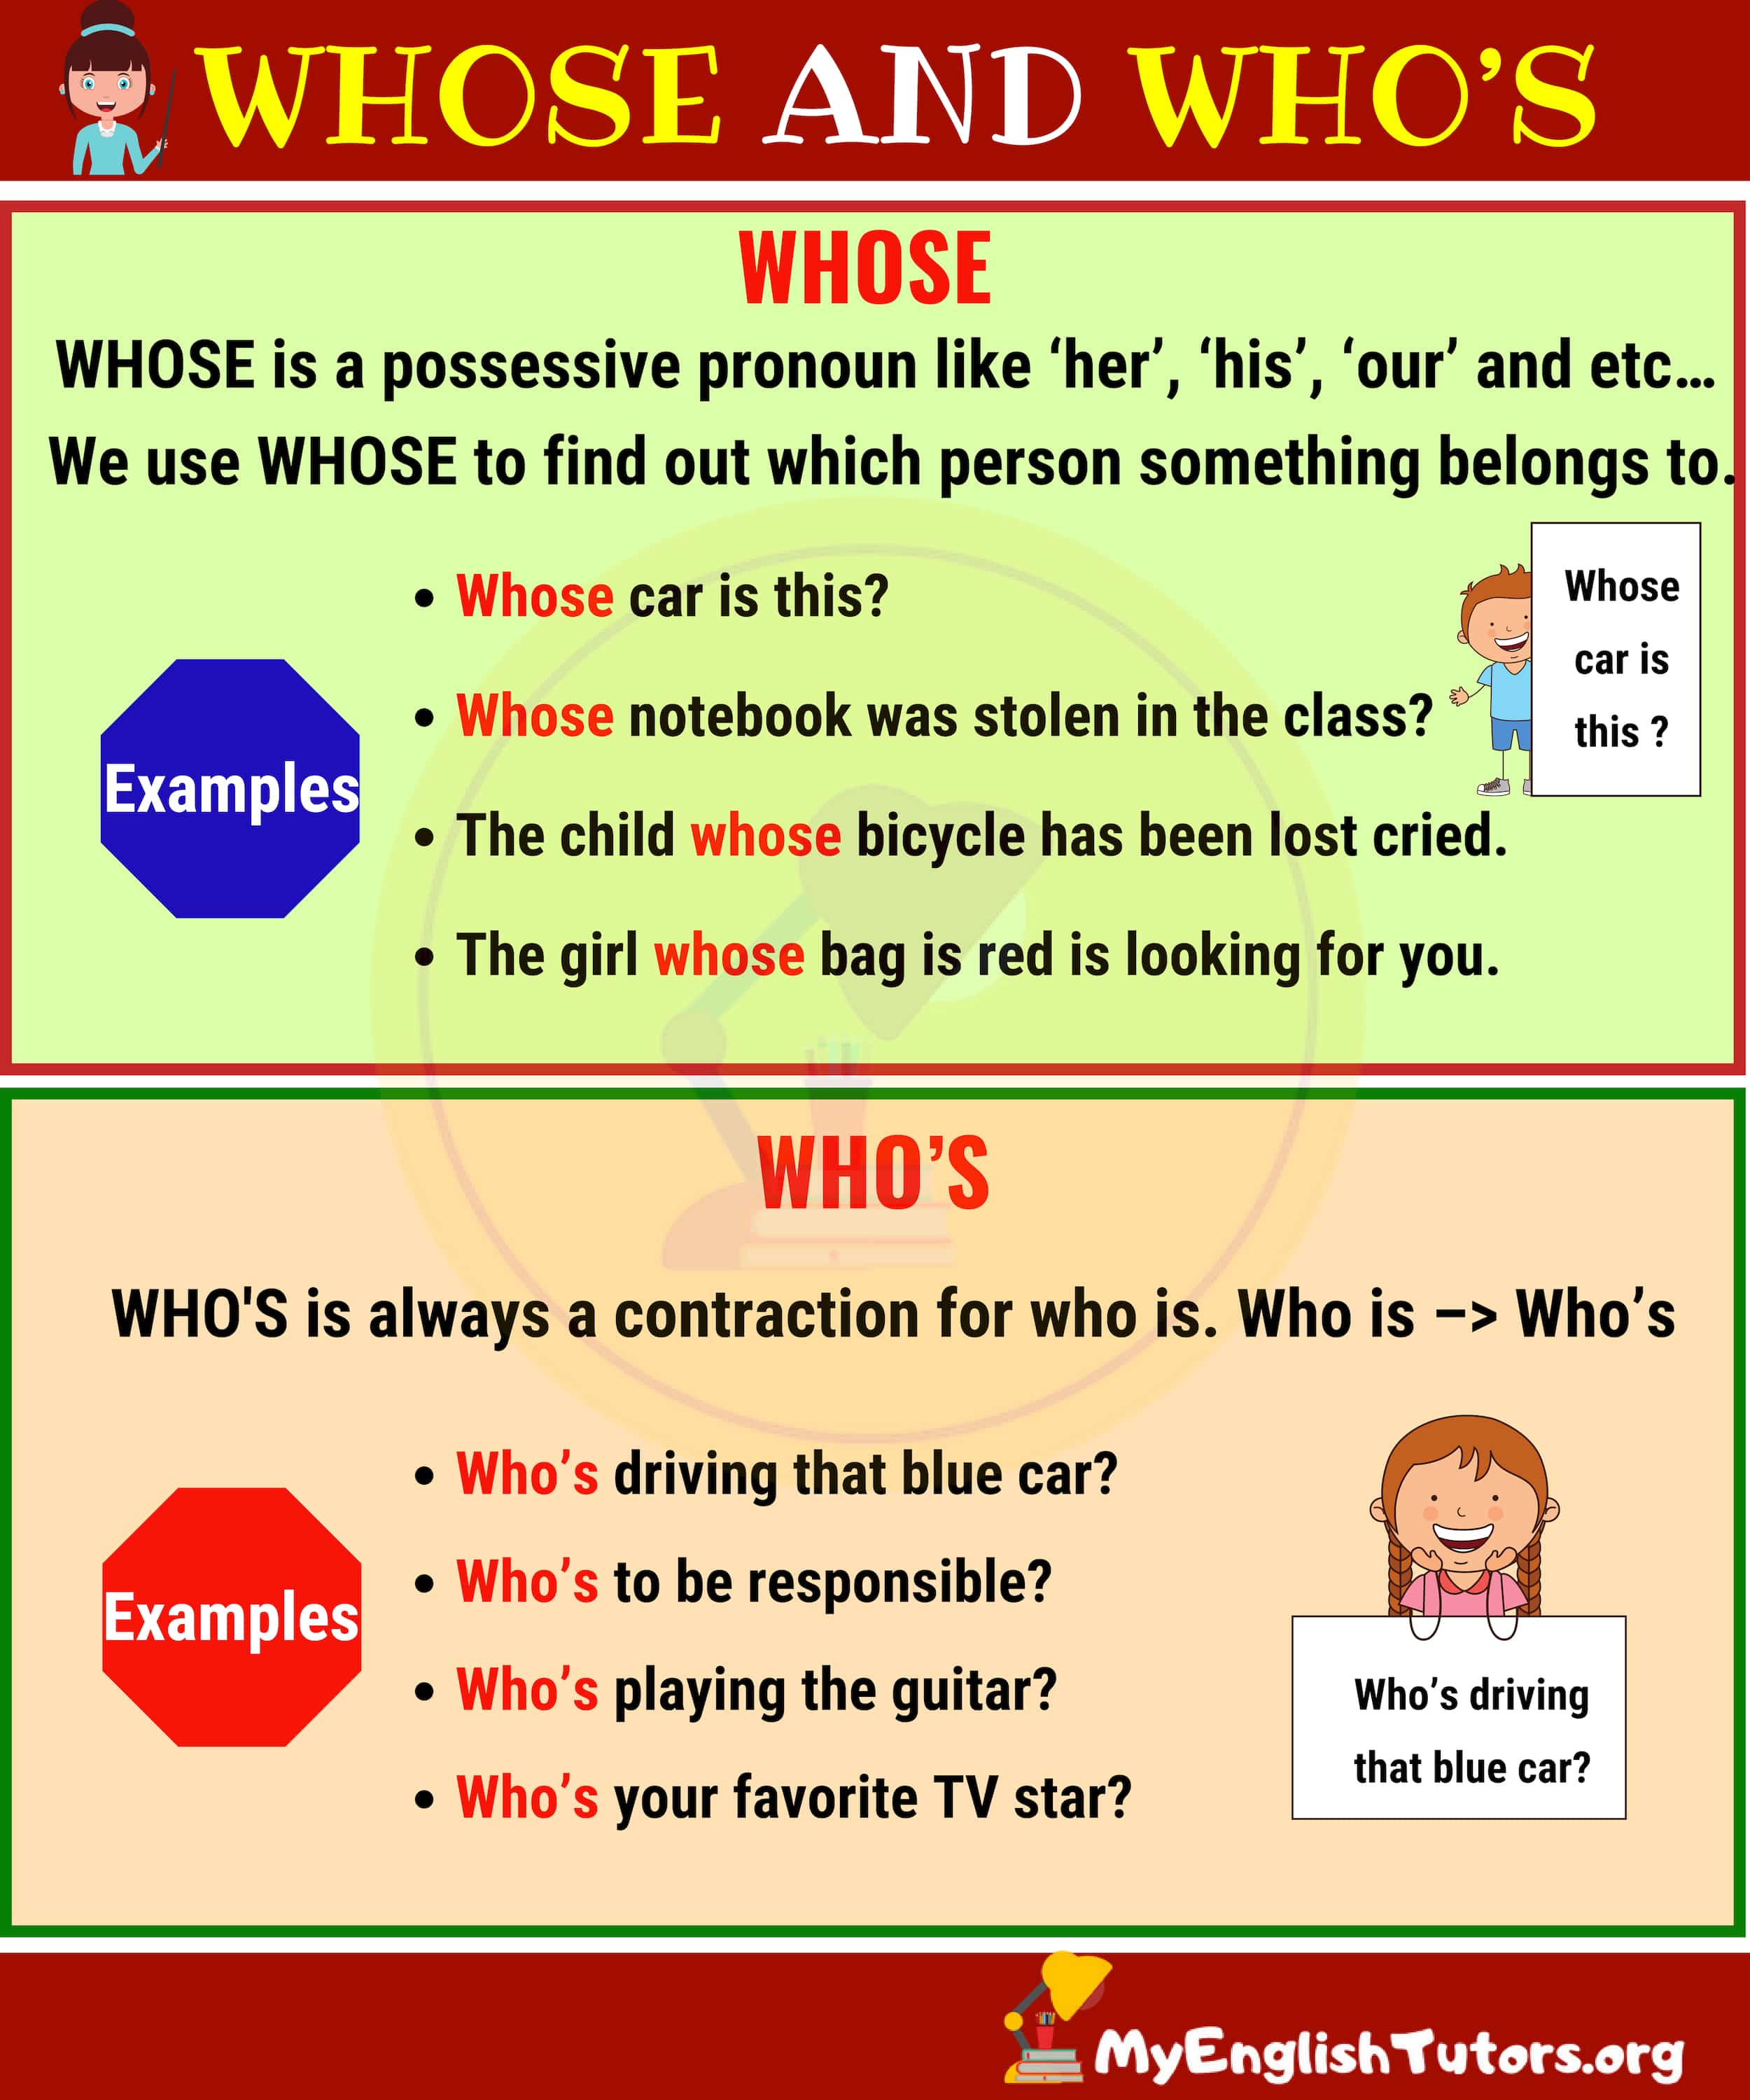 WHOSE vs WHO'S: What's the Difference?